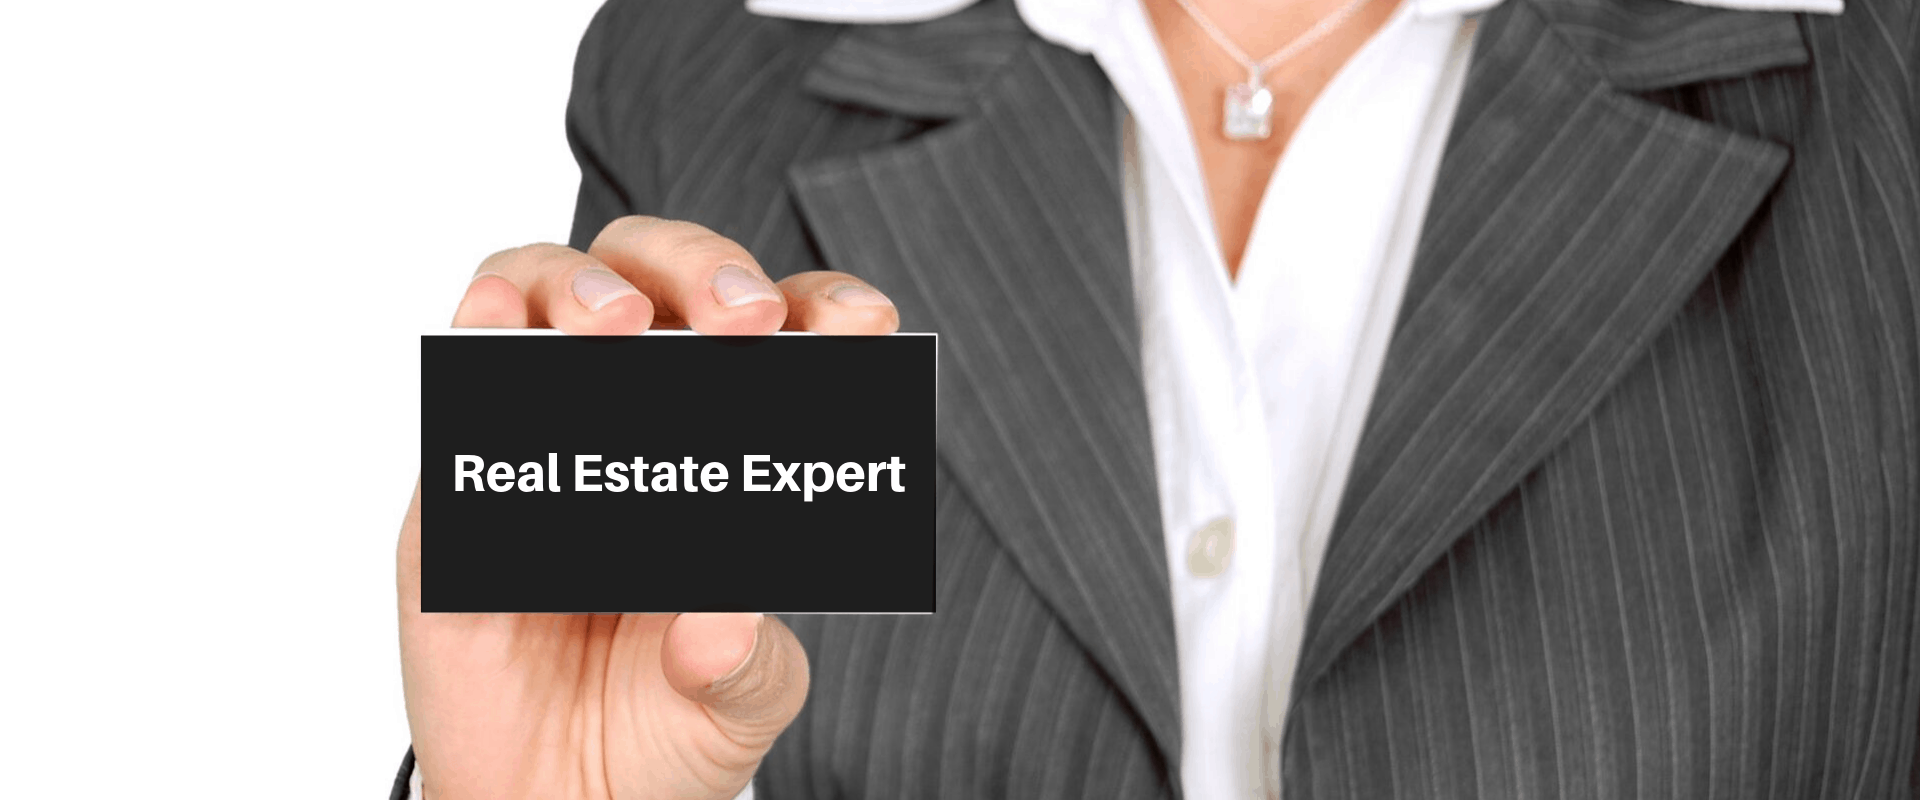 tips to become local real estate expert